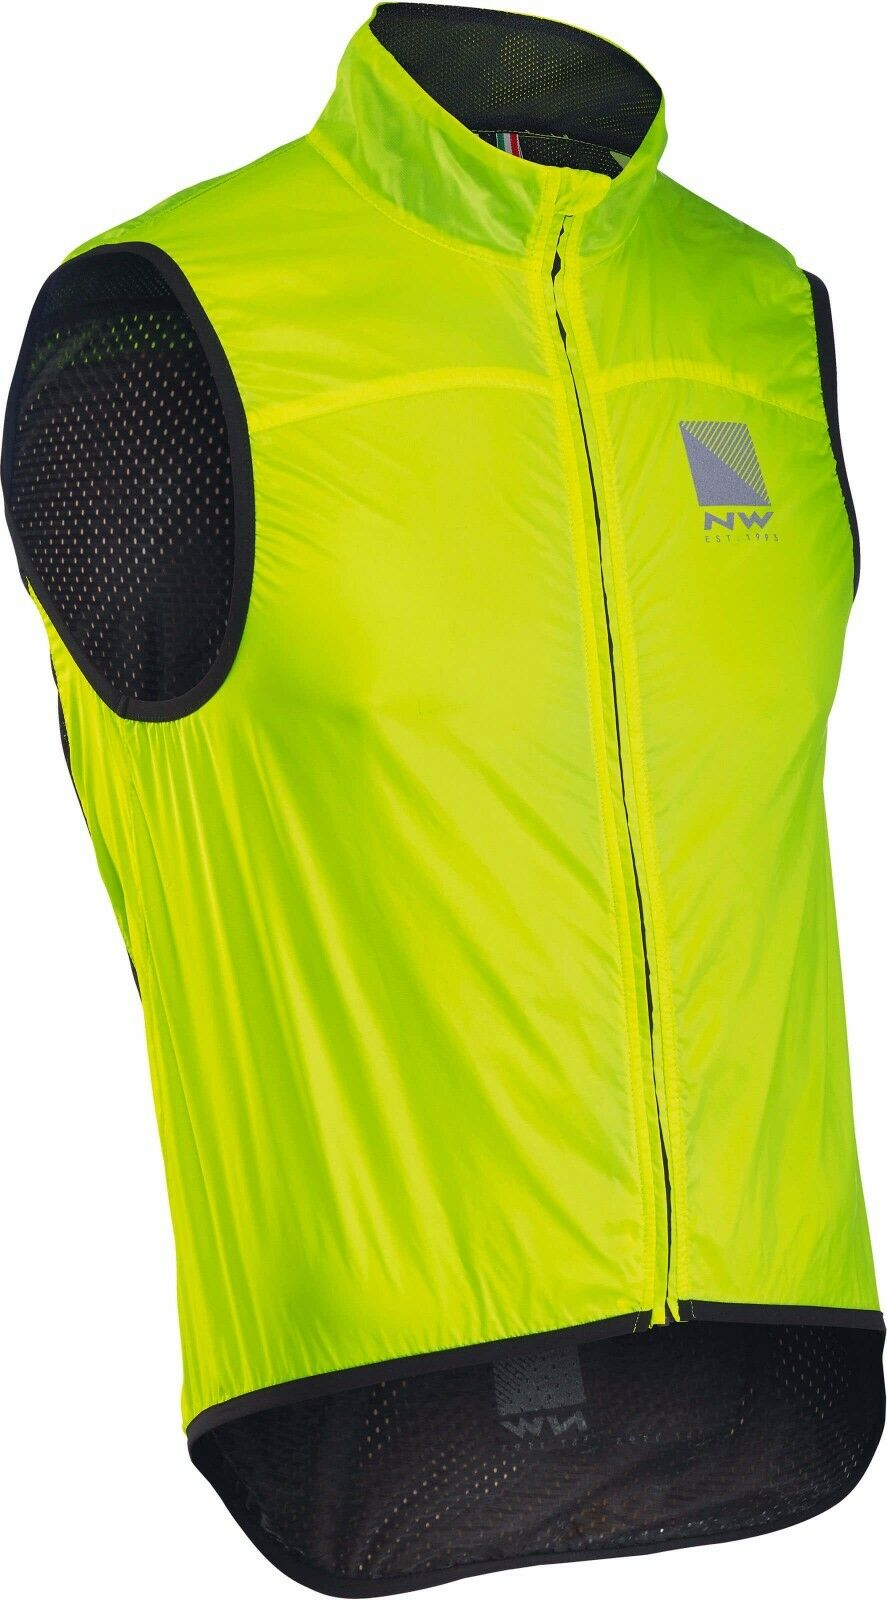 Cape Weste Northwave BREEZE2 vest gelb fluo/vest BREEZE2 weiß Northwave